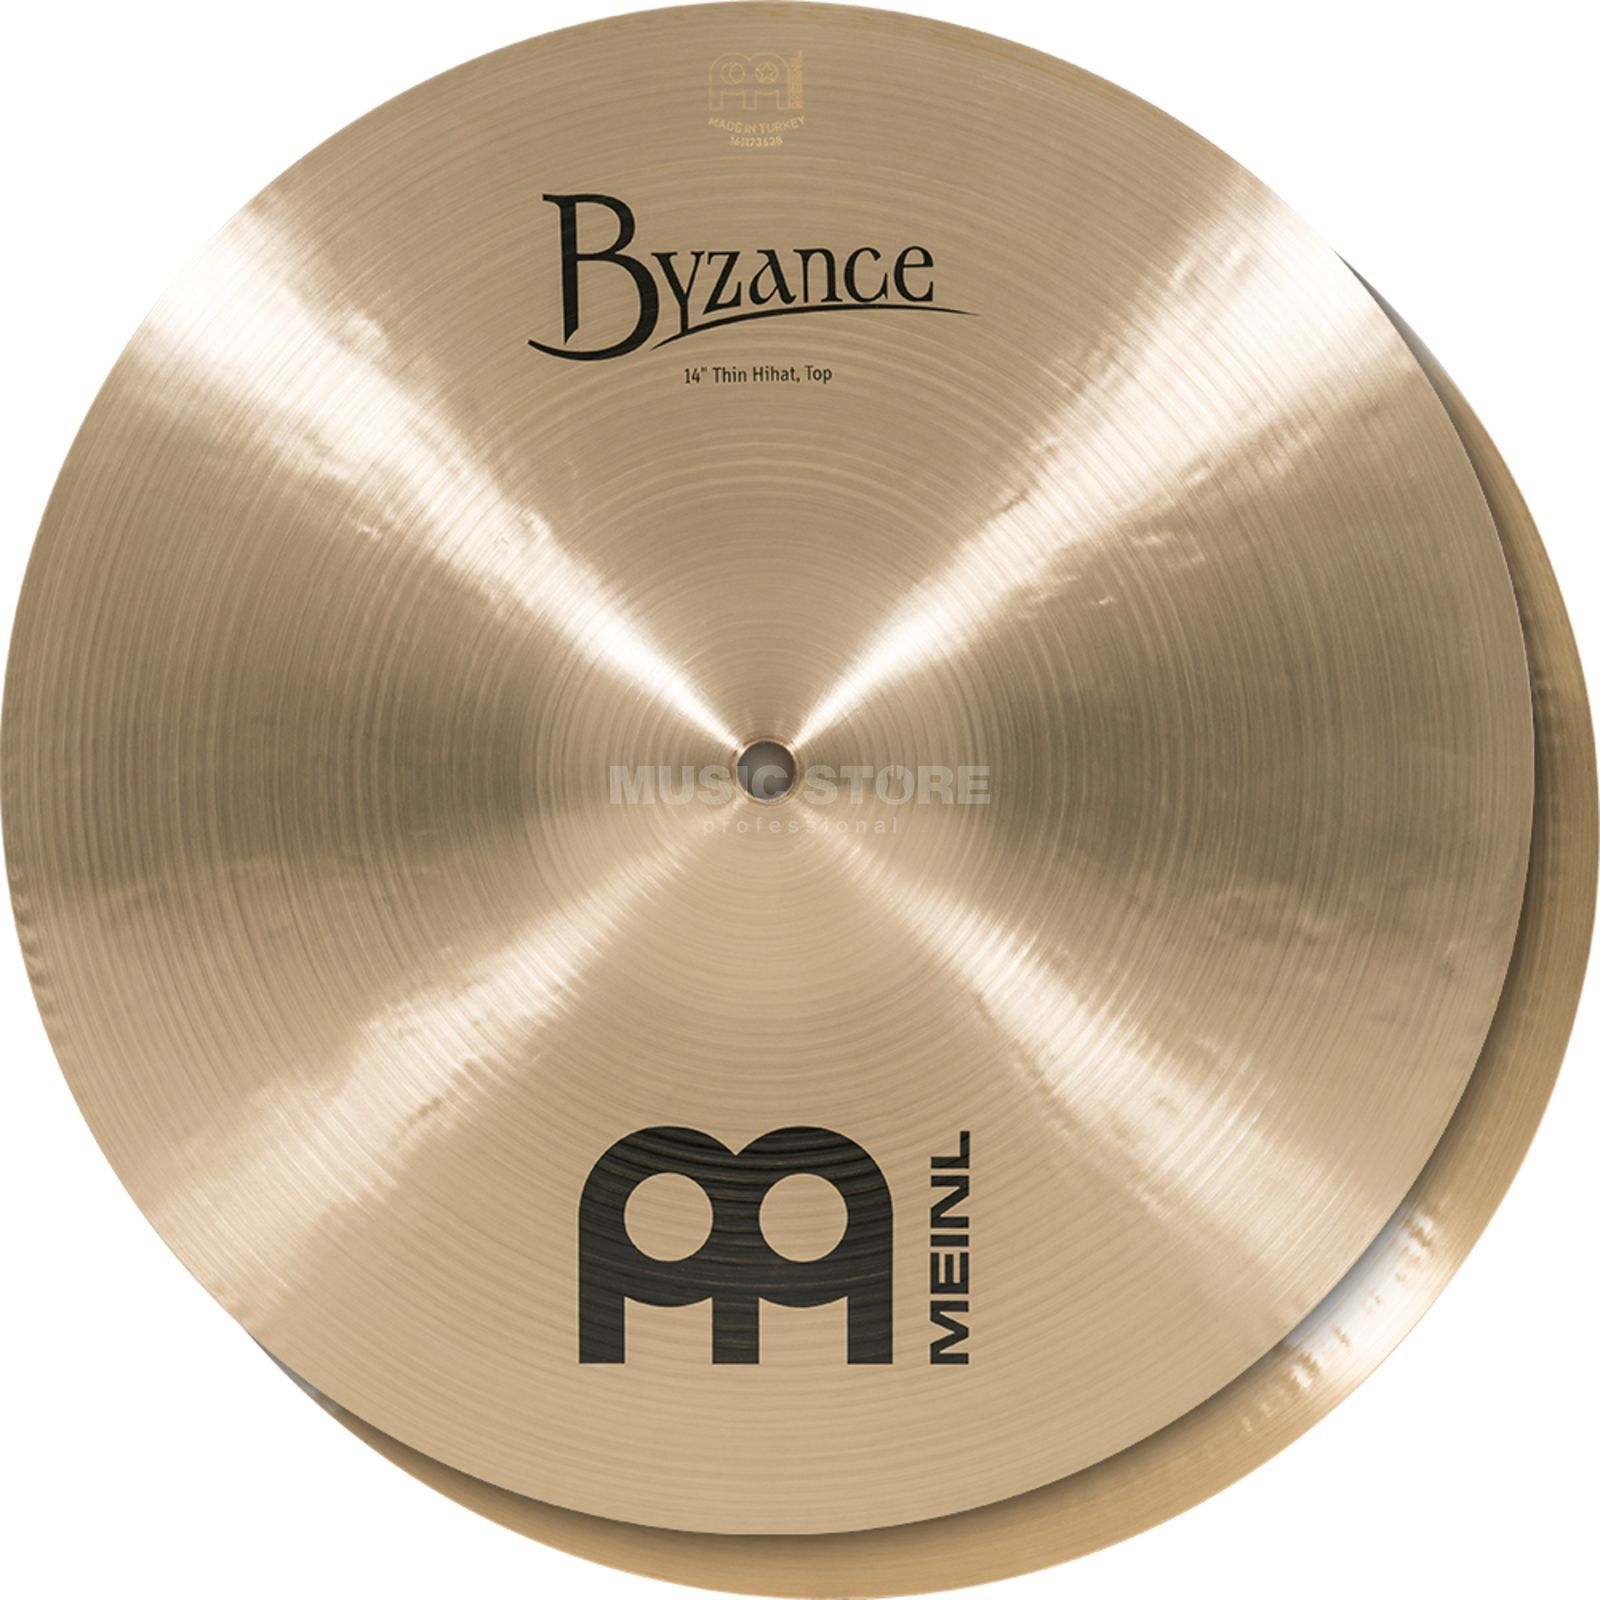 "Meinl Byzance Thin HiHat 14"", B14TH, Traditional Finish Produktbild"